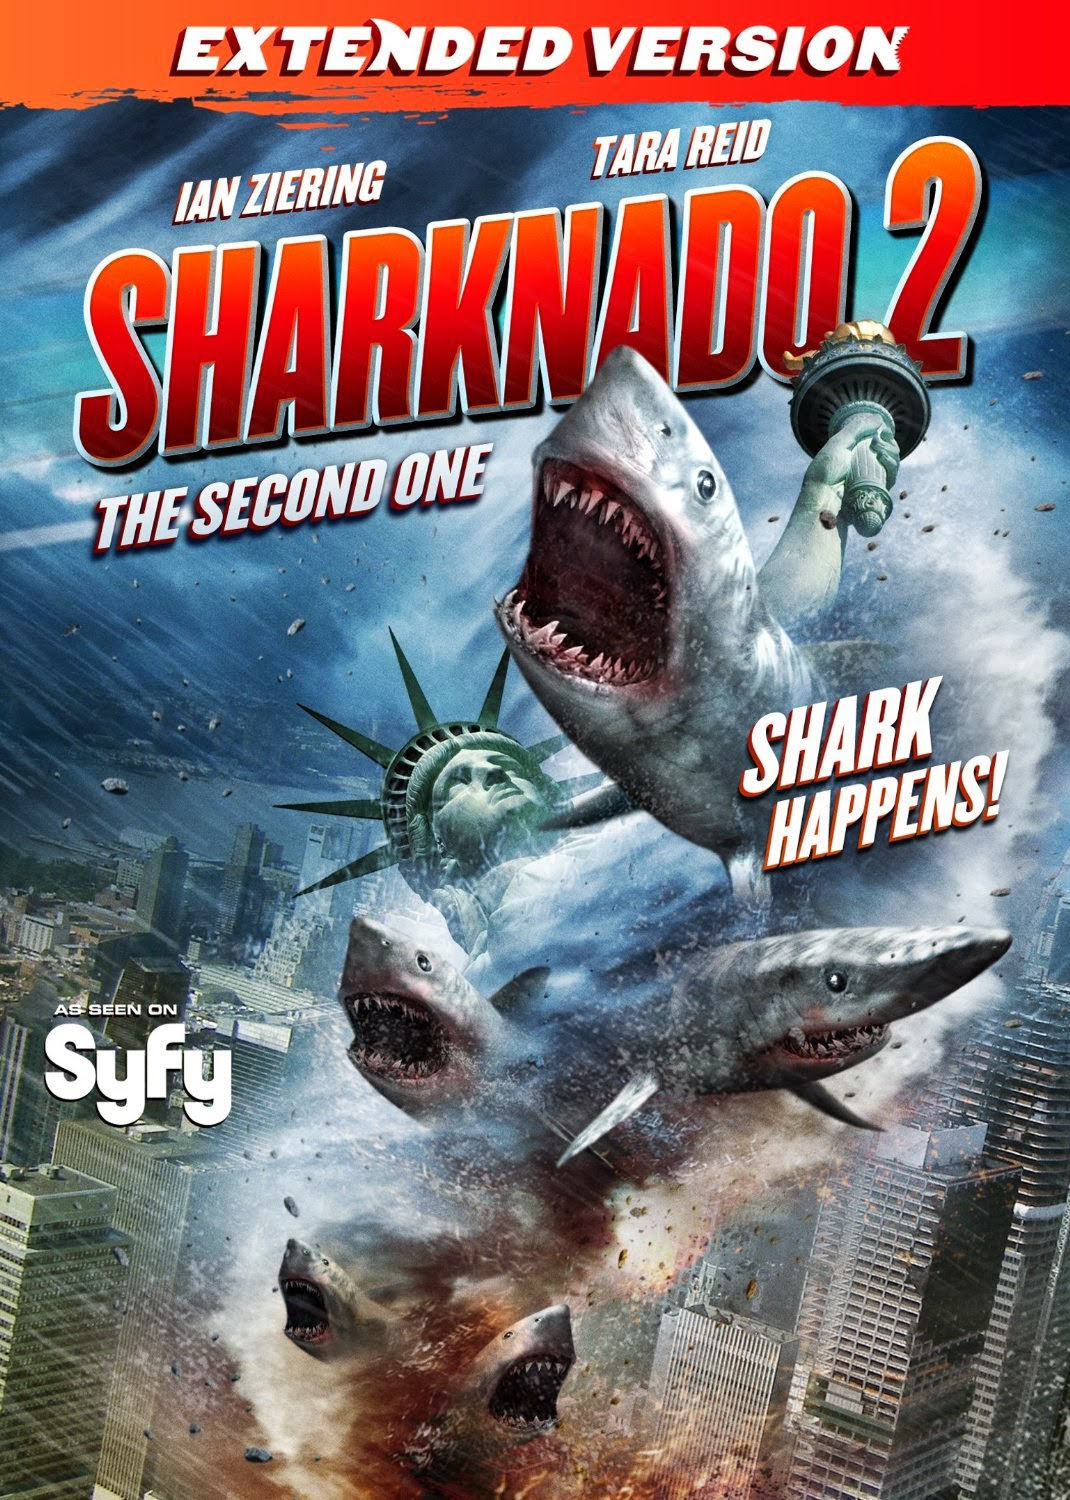 Enter To Win Sharknado 2 DVD